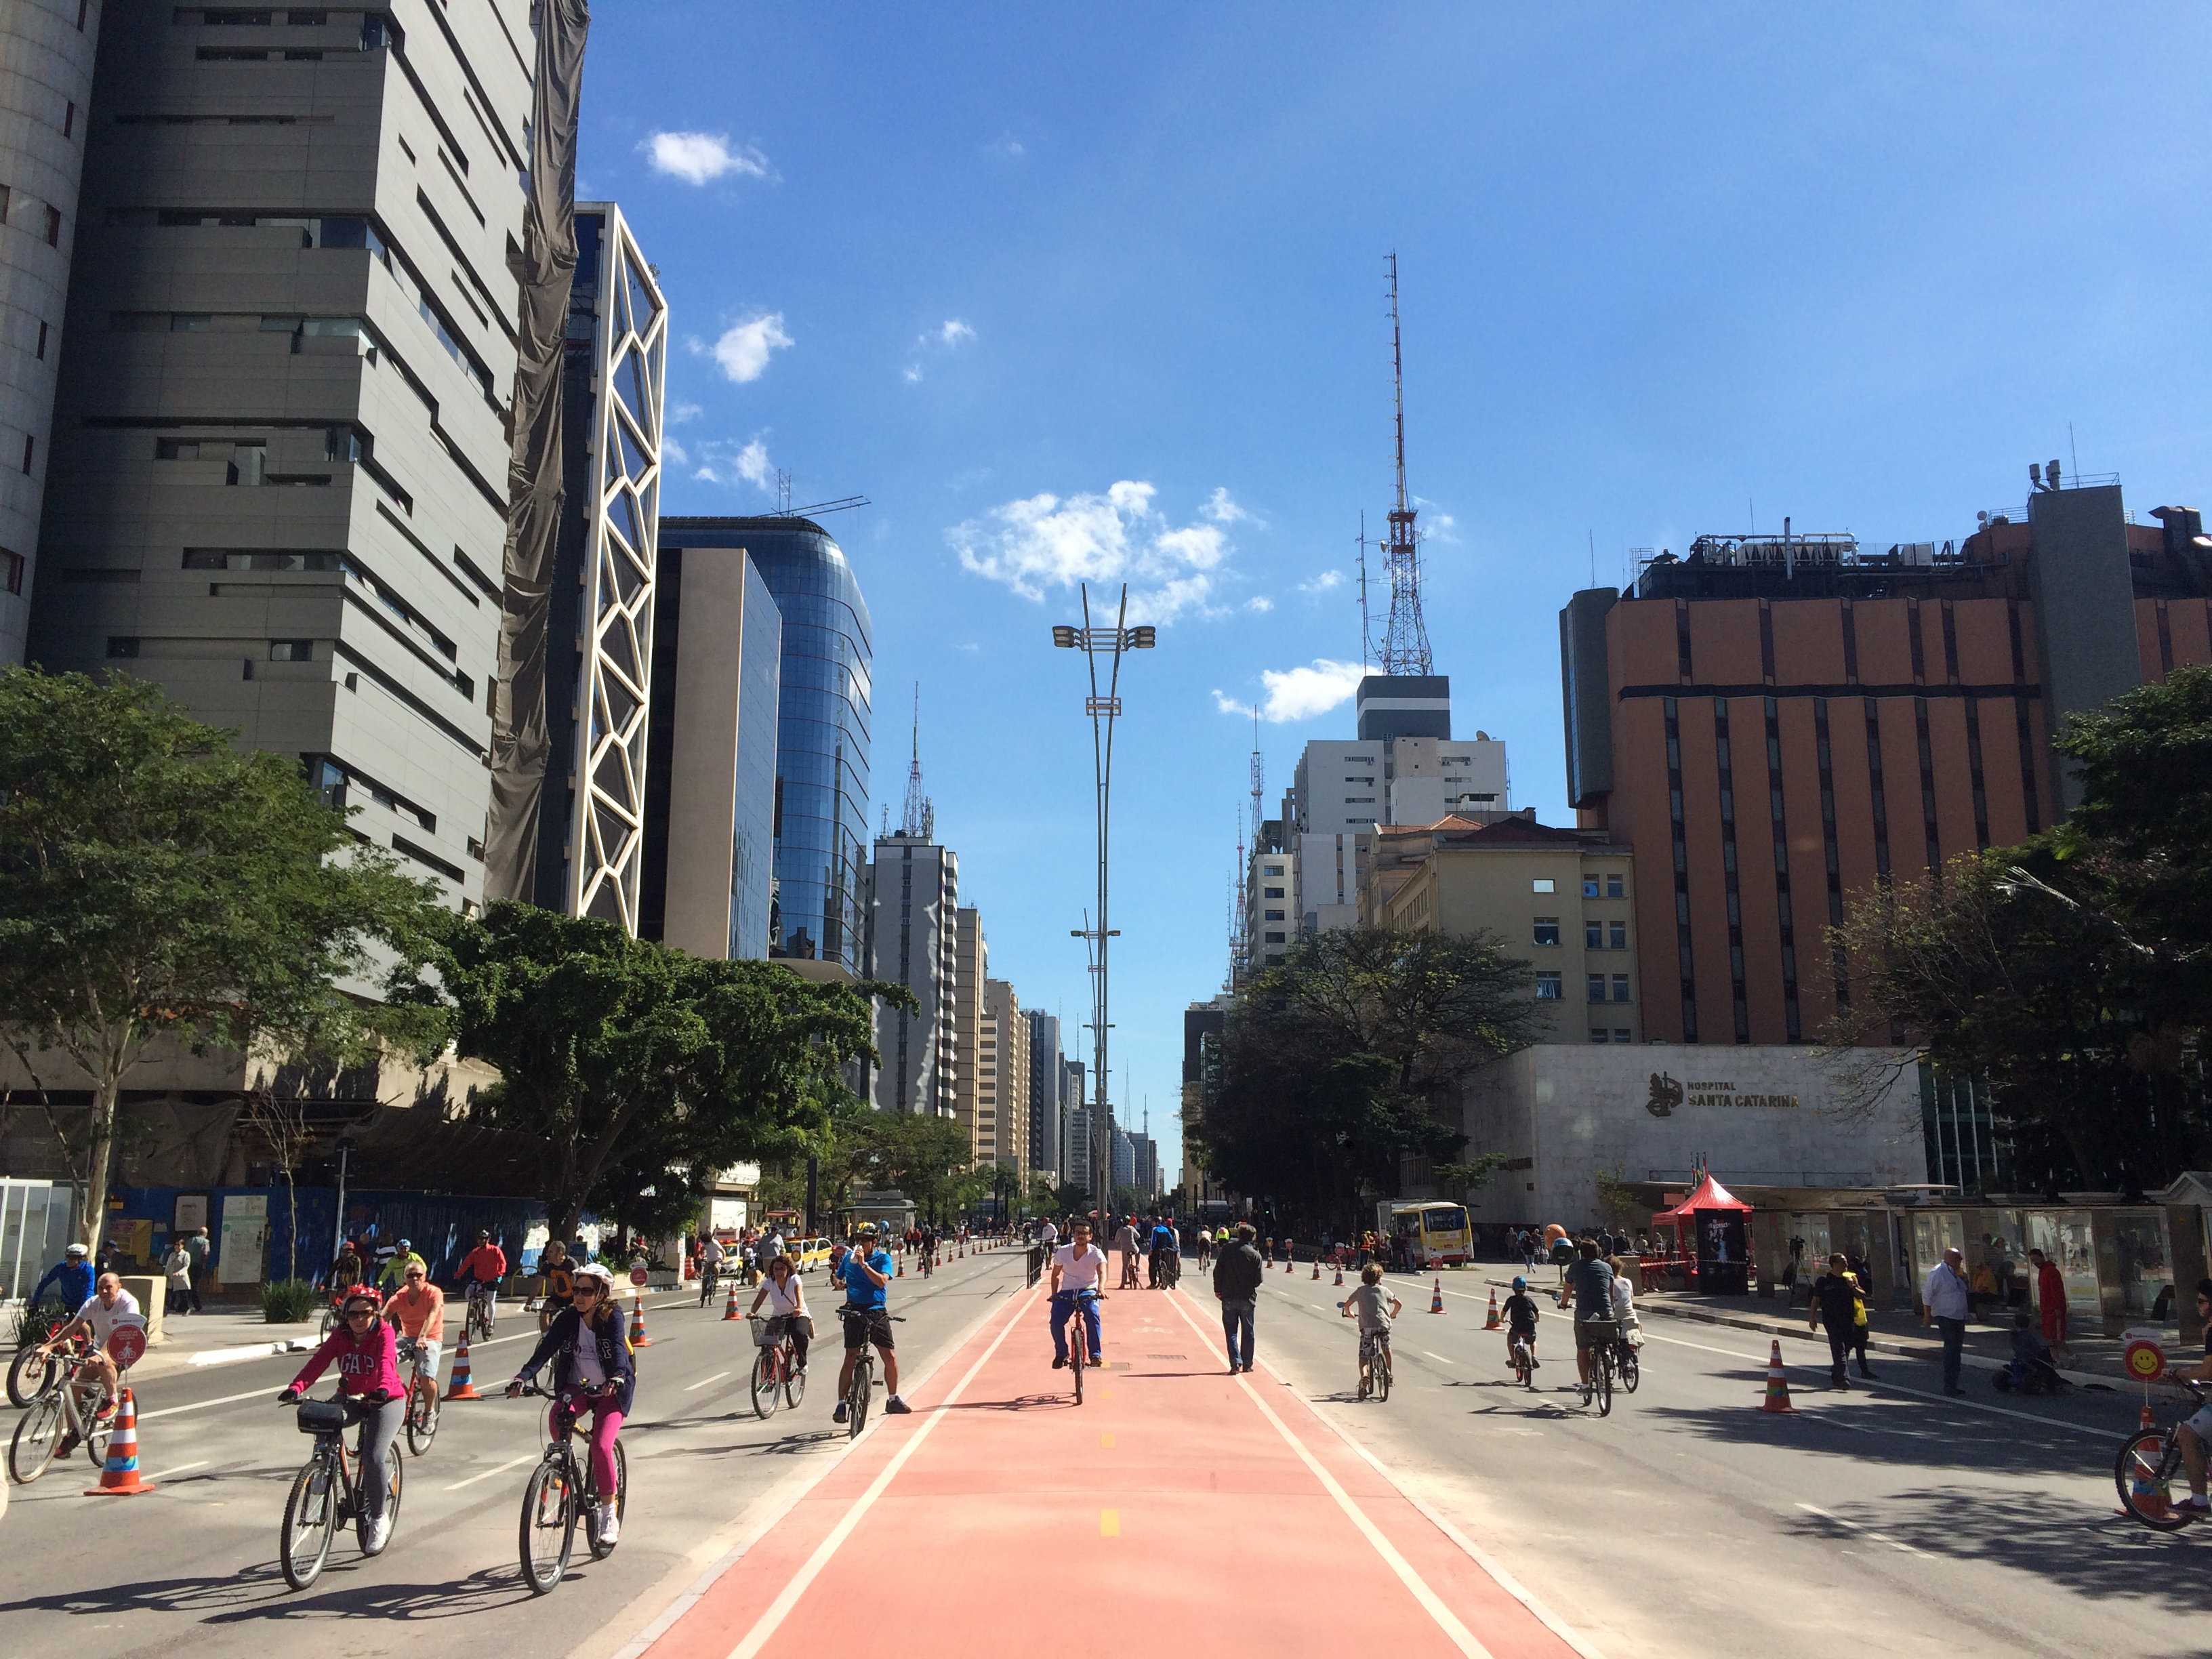 Opening of Paulista Avenue's bike lane